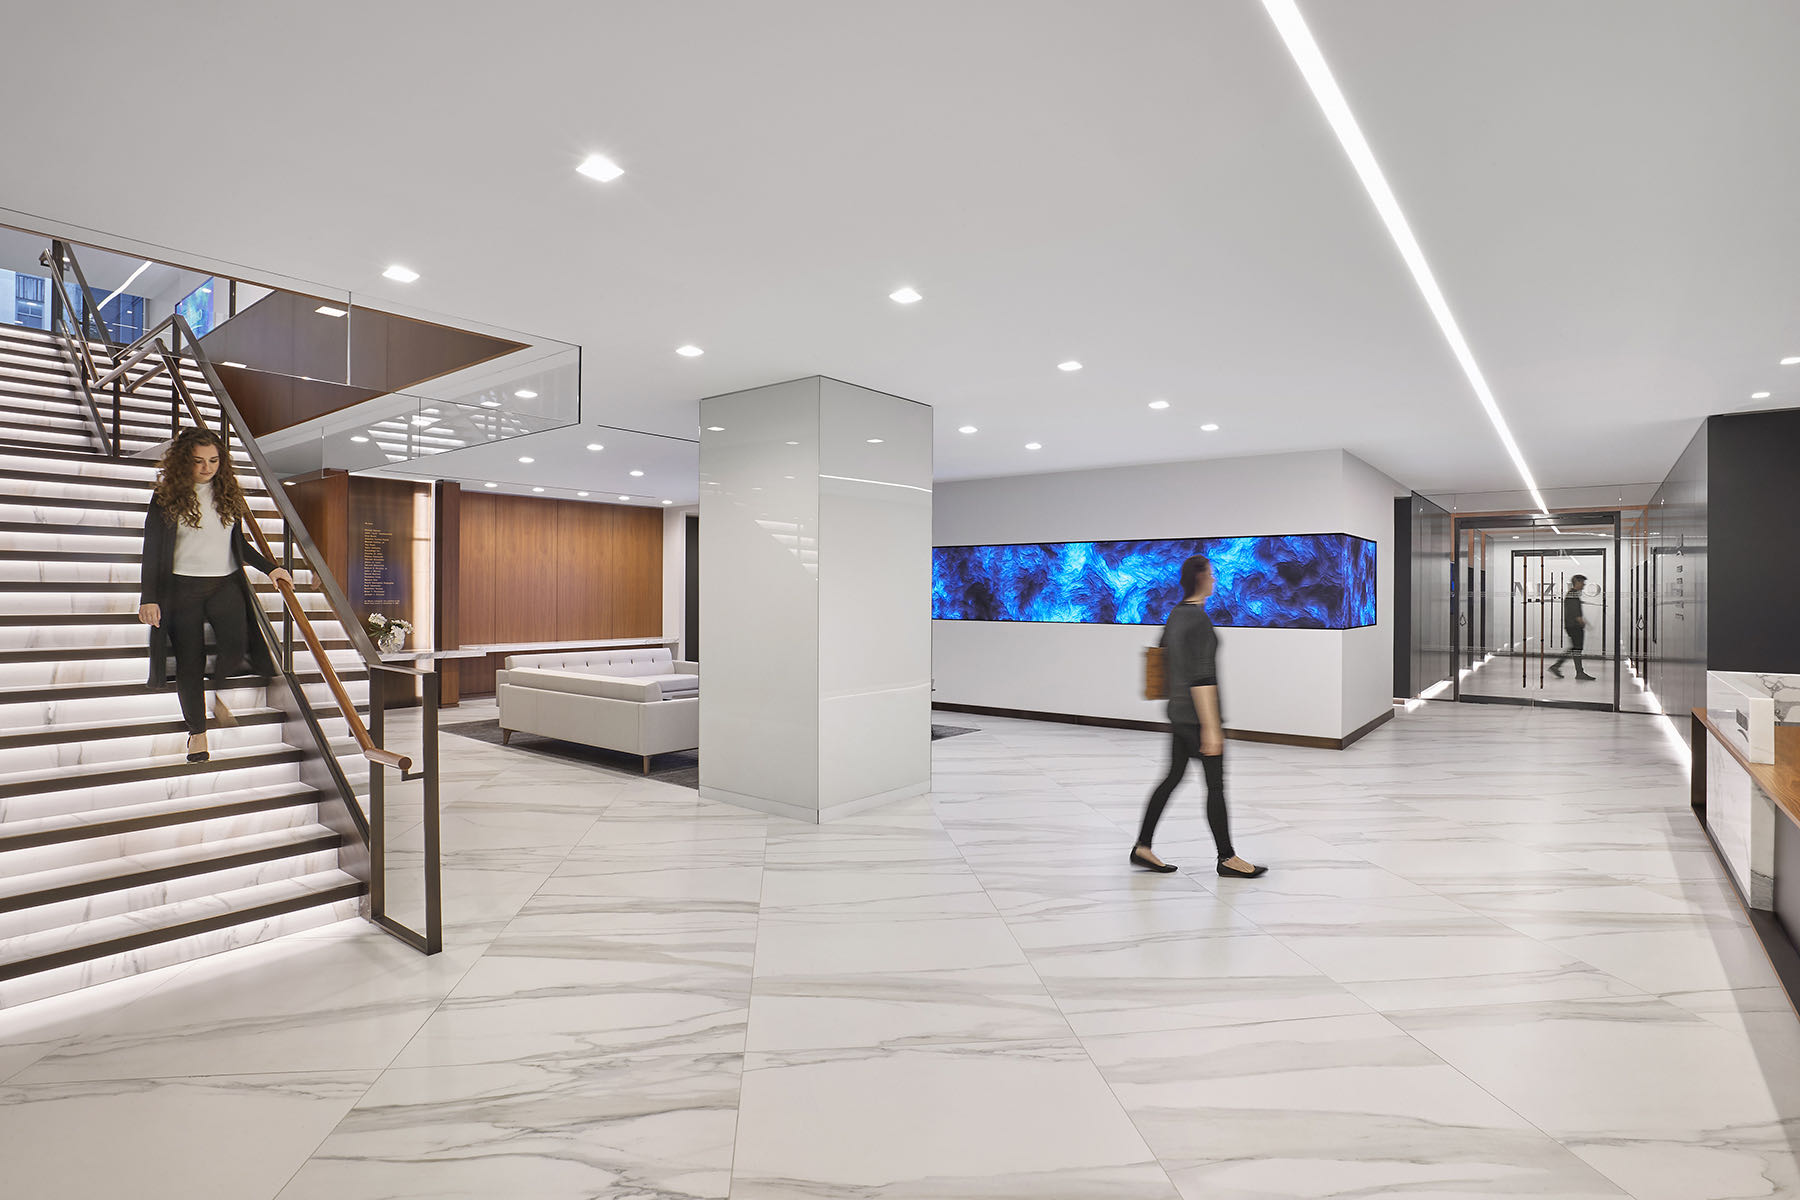 A Look Inside Mizuho Bank's New NYC Office